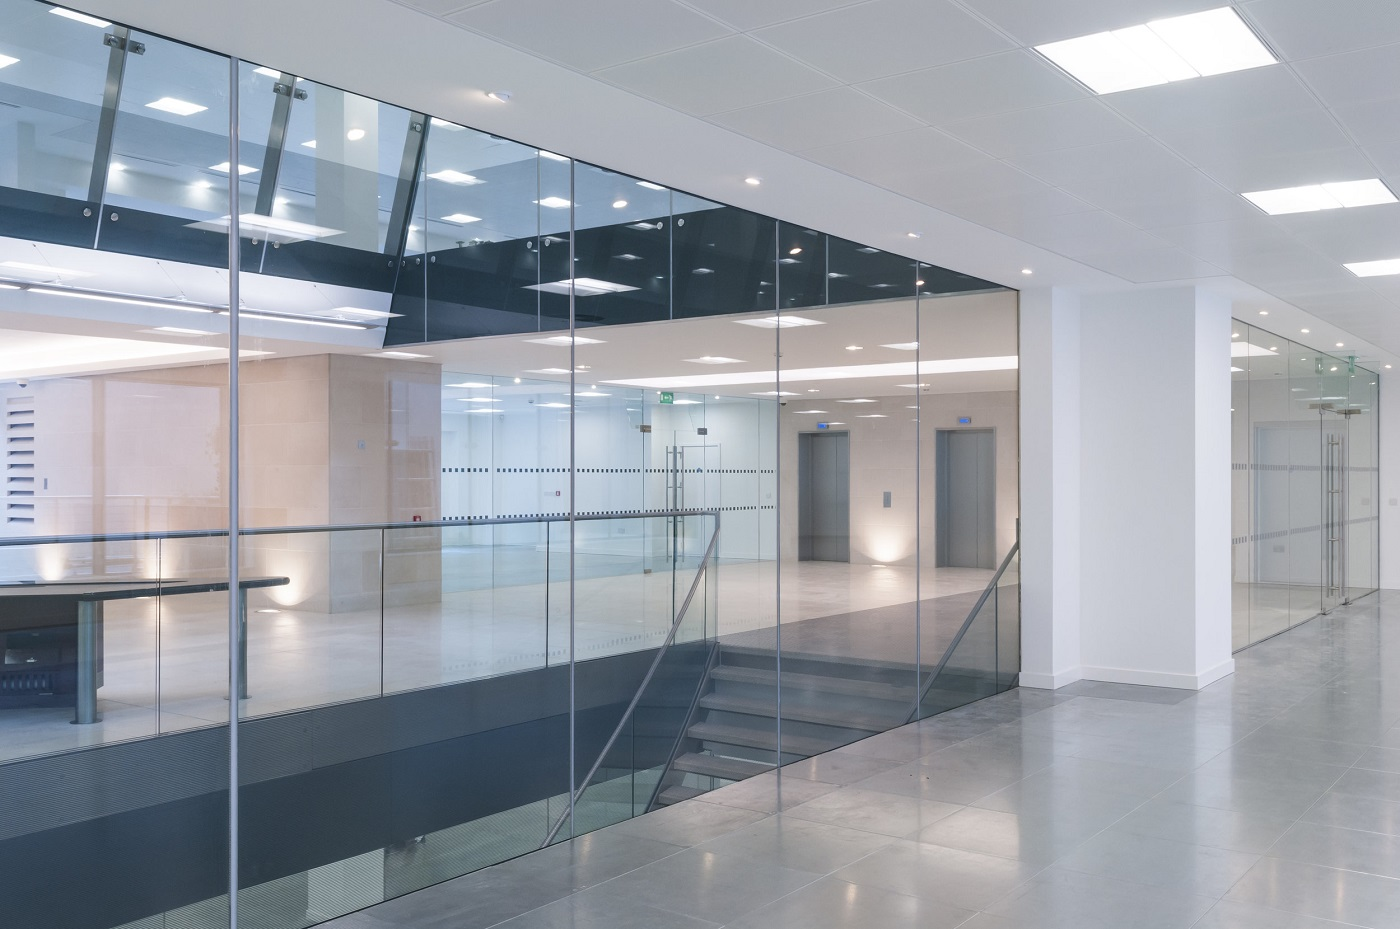 Office building renovations and construction